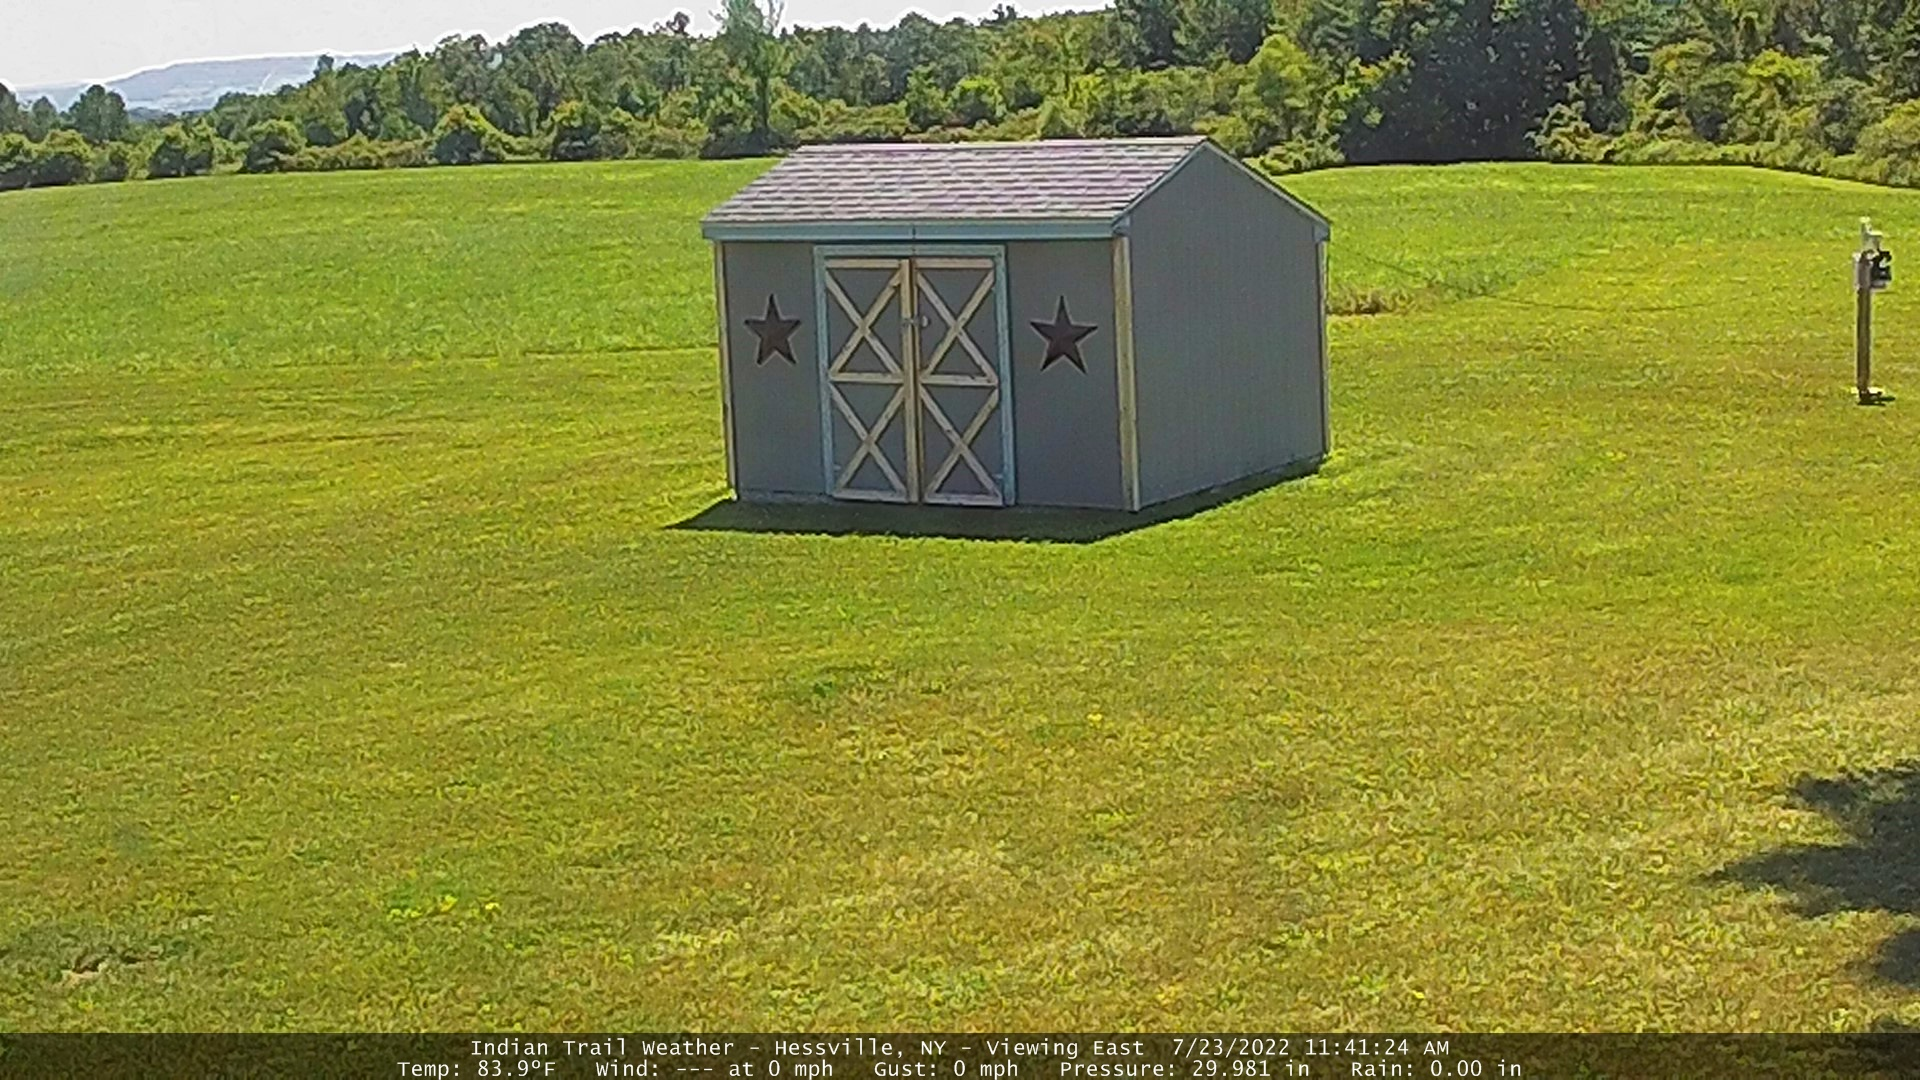 Indian Trail Weather Webcam - Viewing South